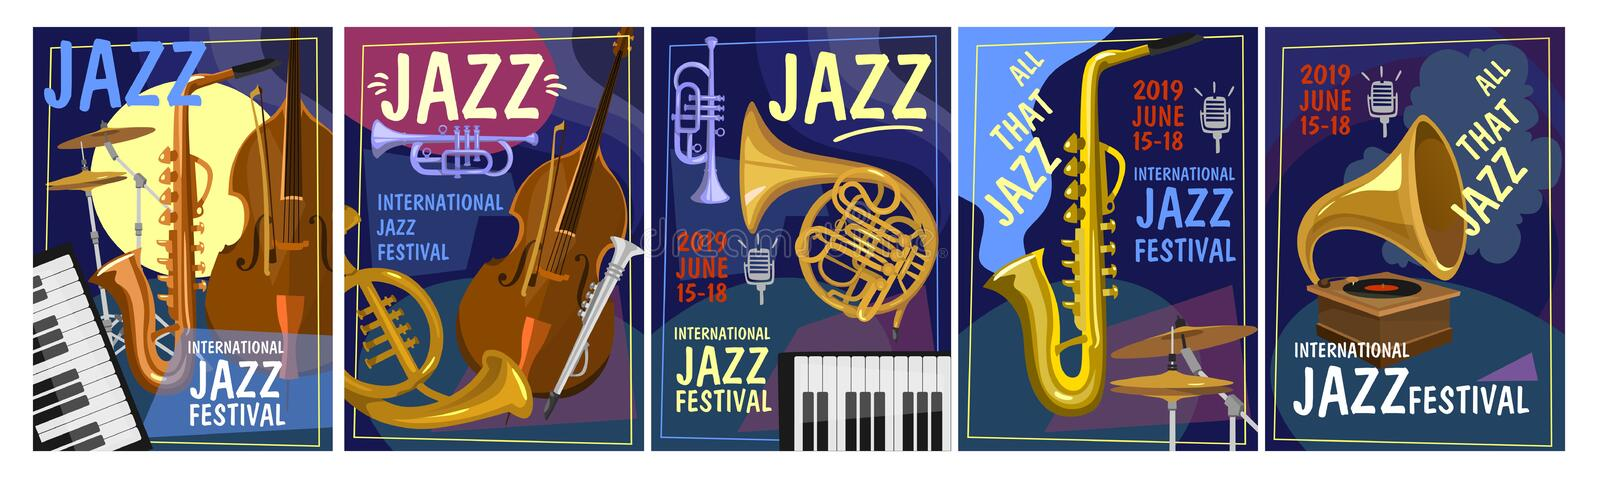 Jazz festival design concept. Colorful jazz party invitation posters set in cartoon style. Vector illustration stock illustration